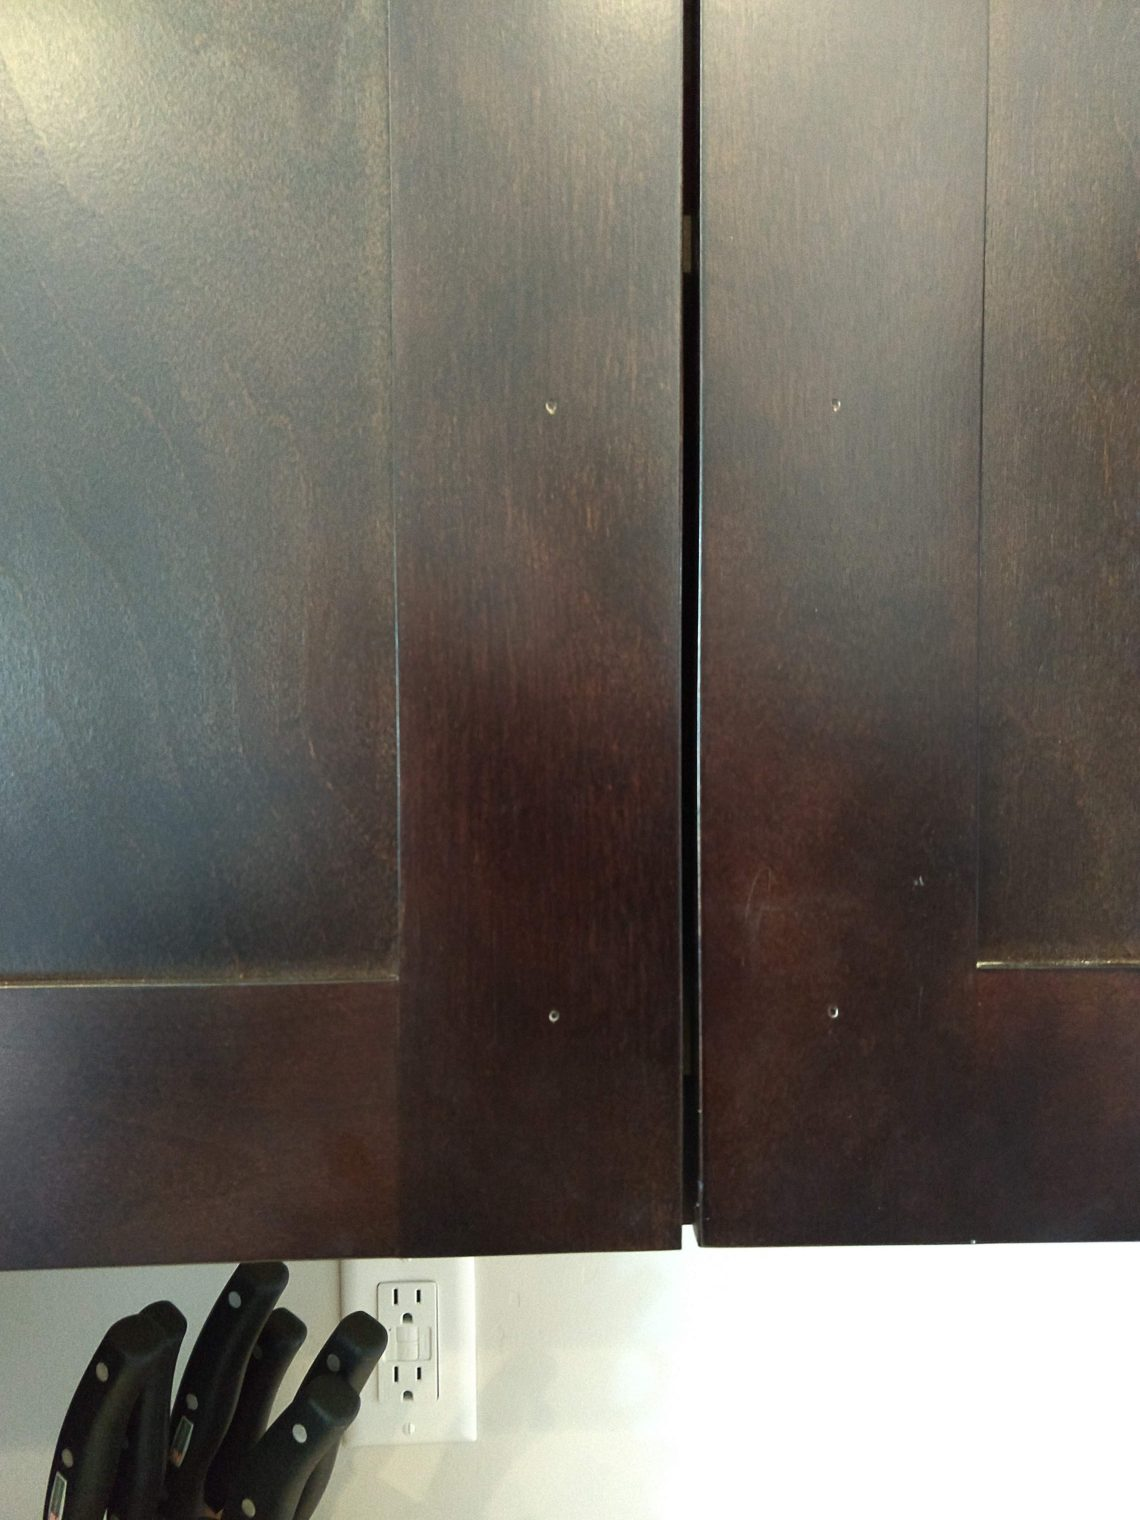 installing cabinet hardware on your own